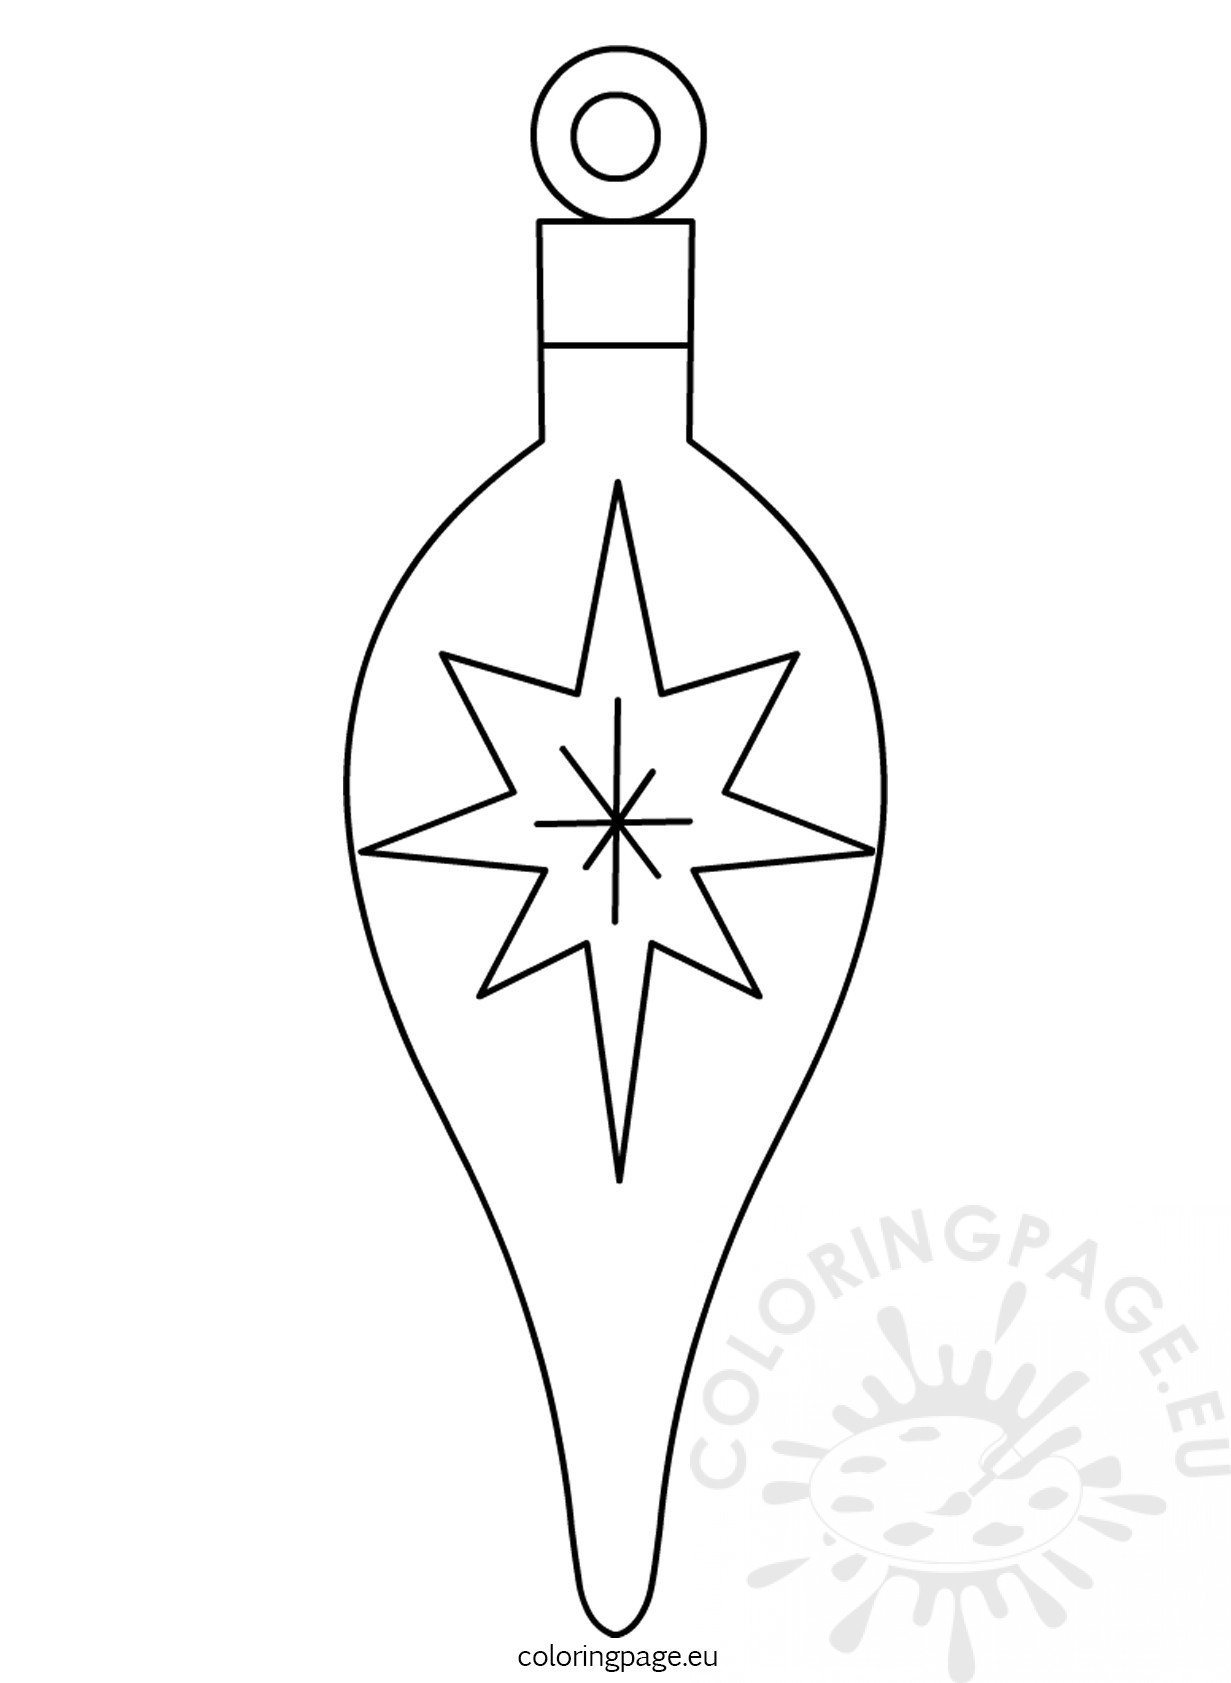 Christmas Tree Ornament Printable Coloring Page Tree Ornament Coloring Pages